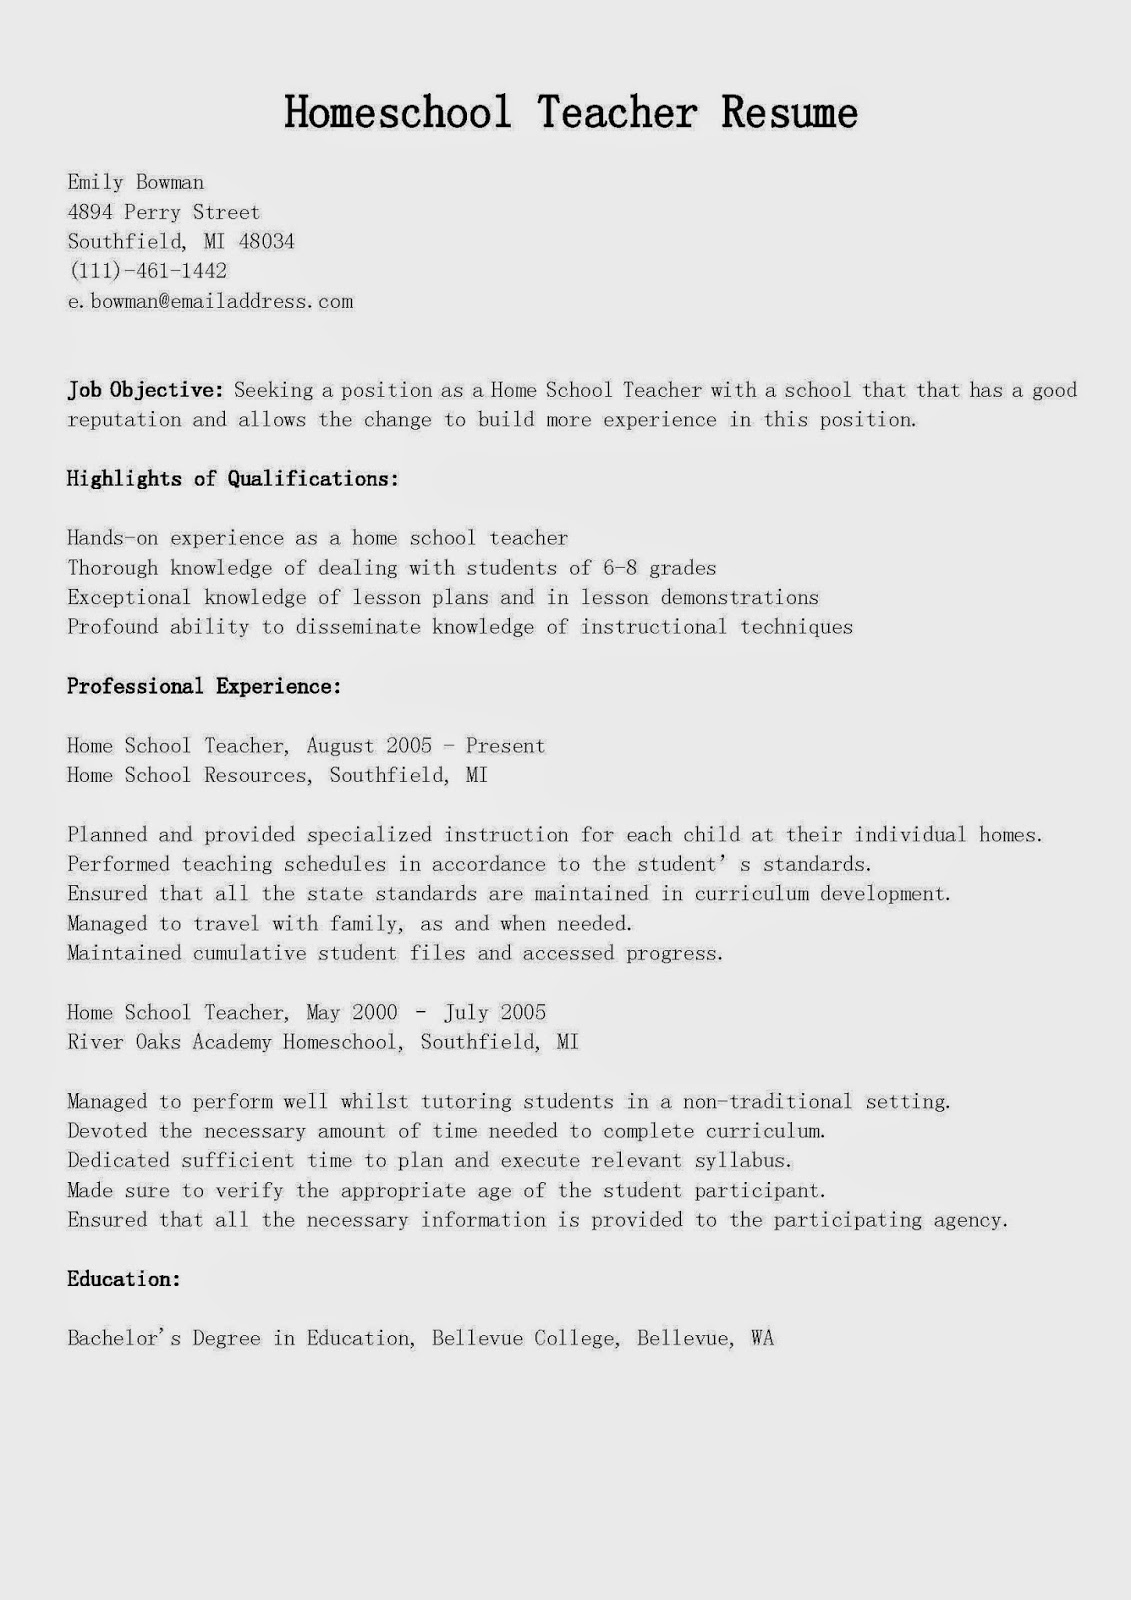 Resume Samples Homeschool Teacher Resume Sample